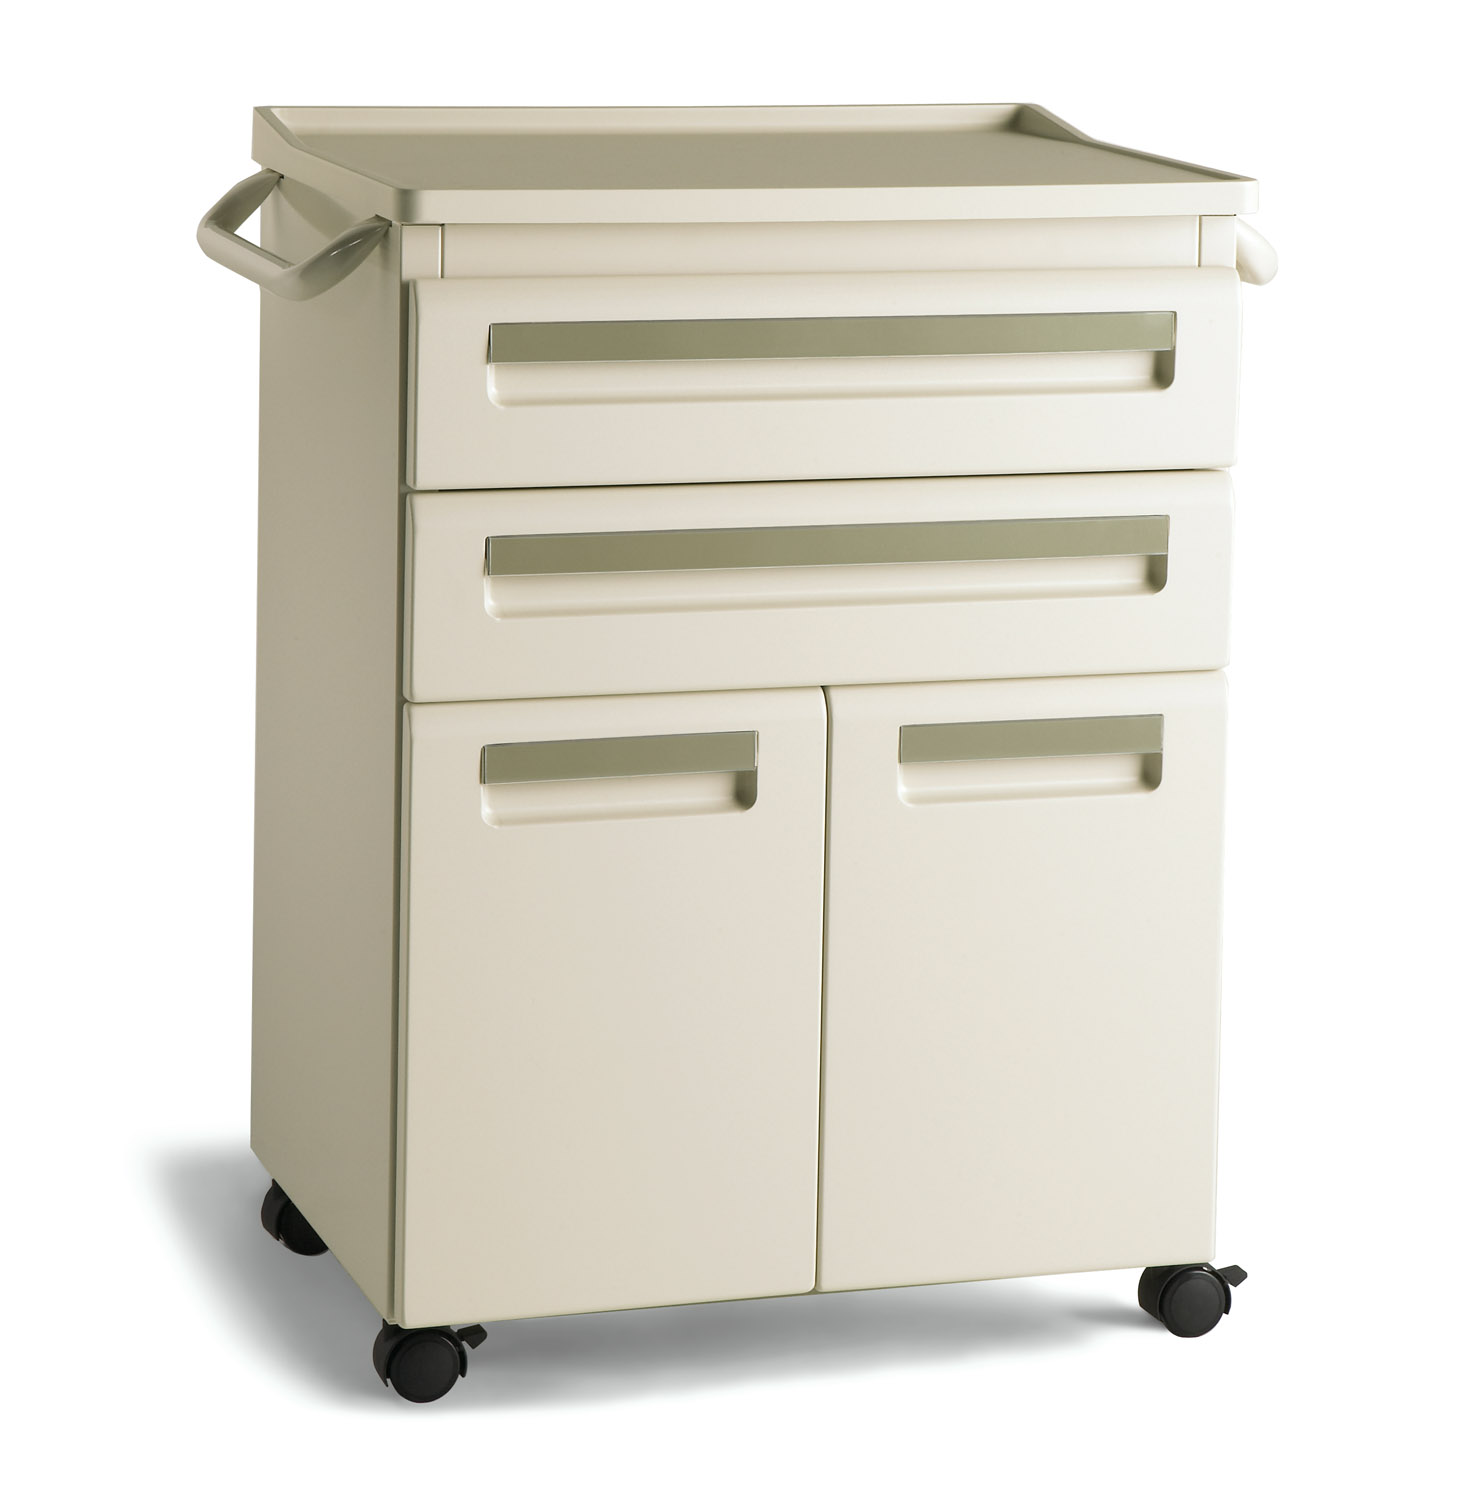 TREATMENT CABINETS, 6065 MOBILE, ACCESSORIES, SOFT EDGE TOP